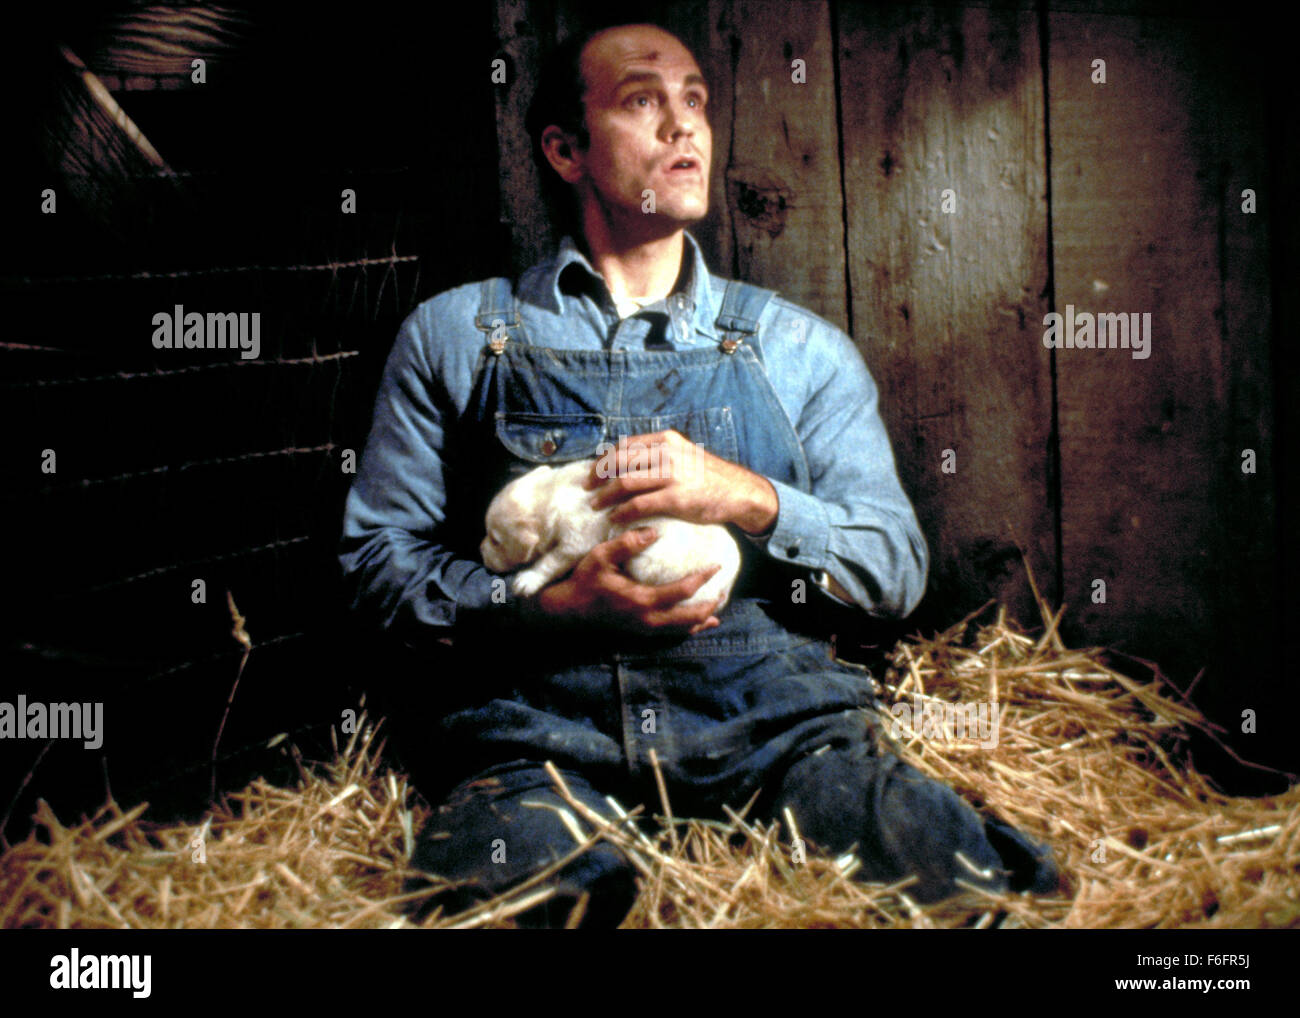 of mice and men essay lennie small Everything you ever wanted to know about lennie small in of mice and men,  written by masters of this stuff just for you.